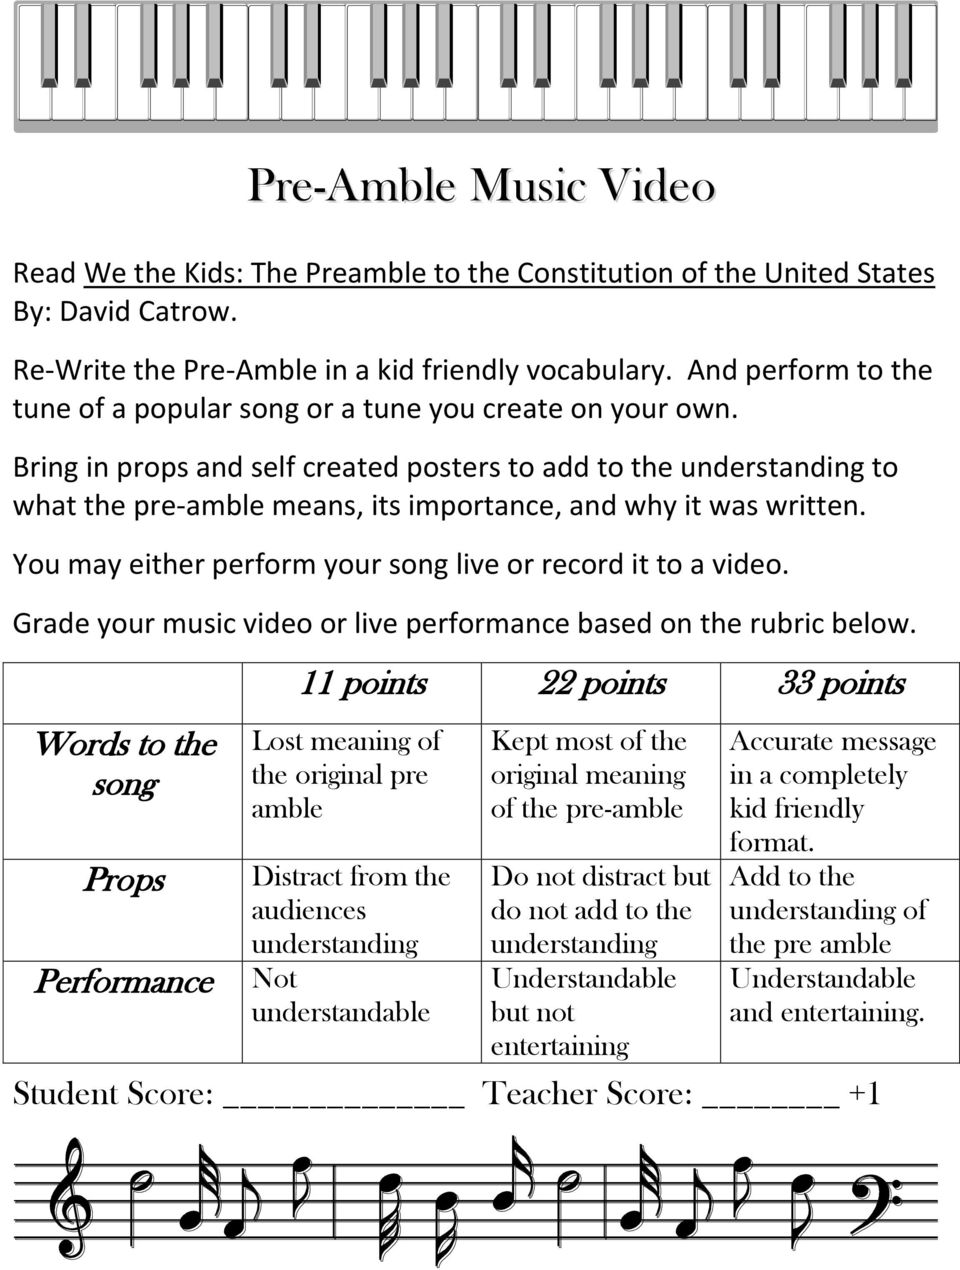 Bring in props and self created posters to add to the understanding to what the pre-amble means, its importance, and why it was written. You may either perform your song live or record it to a video.